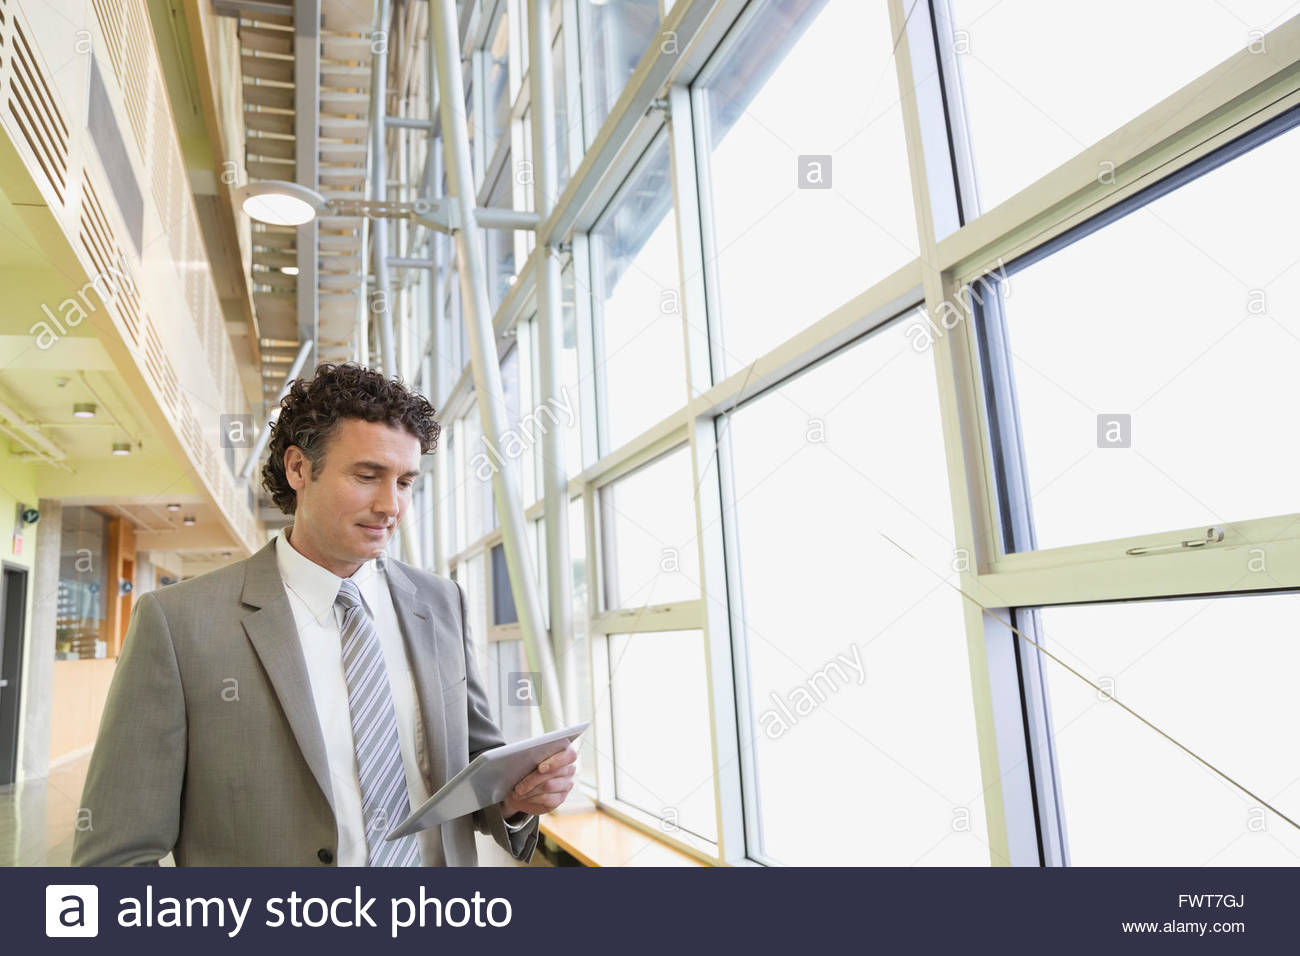 Businessman using digital tablet by windows in office - Stock Image